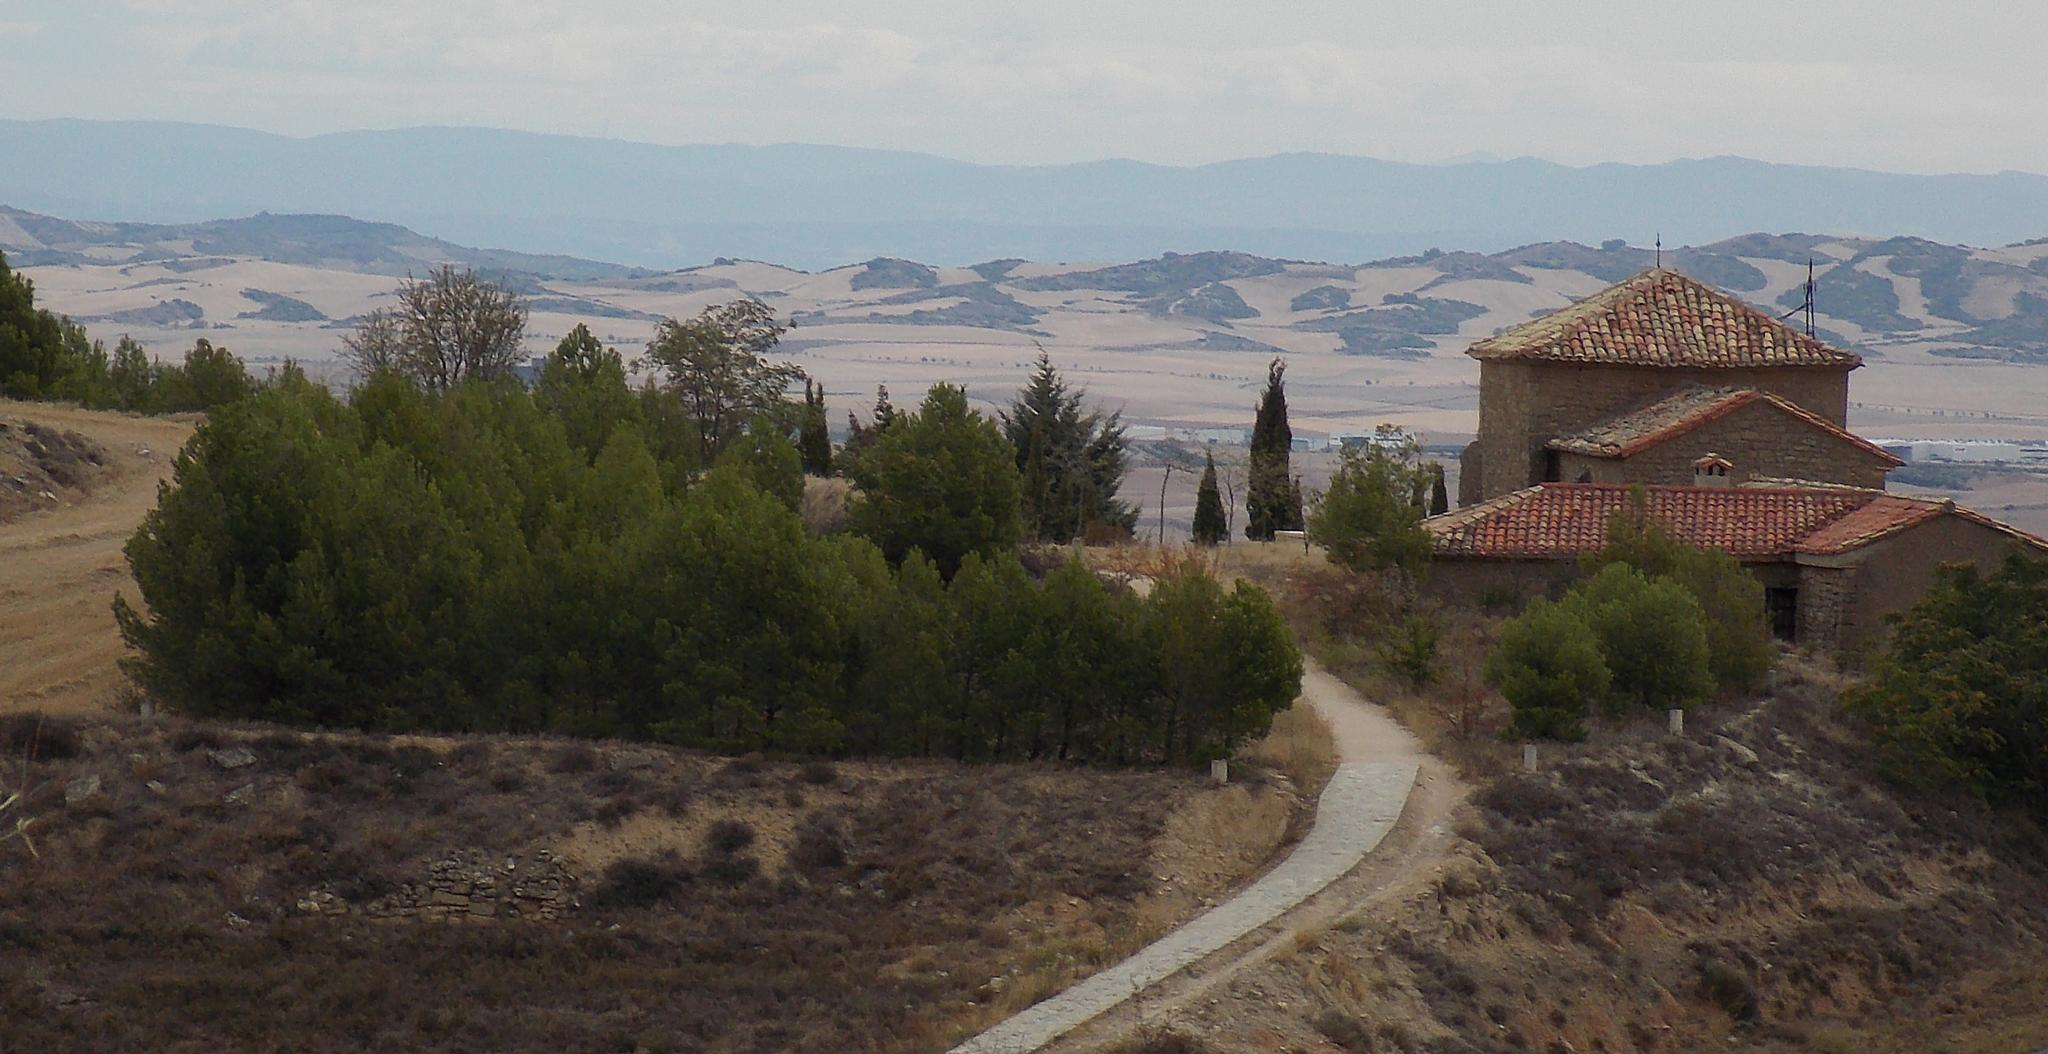 Somewhere in Spain - Part II by A. Castellano Rodriguez